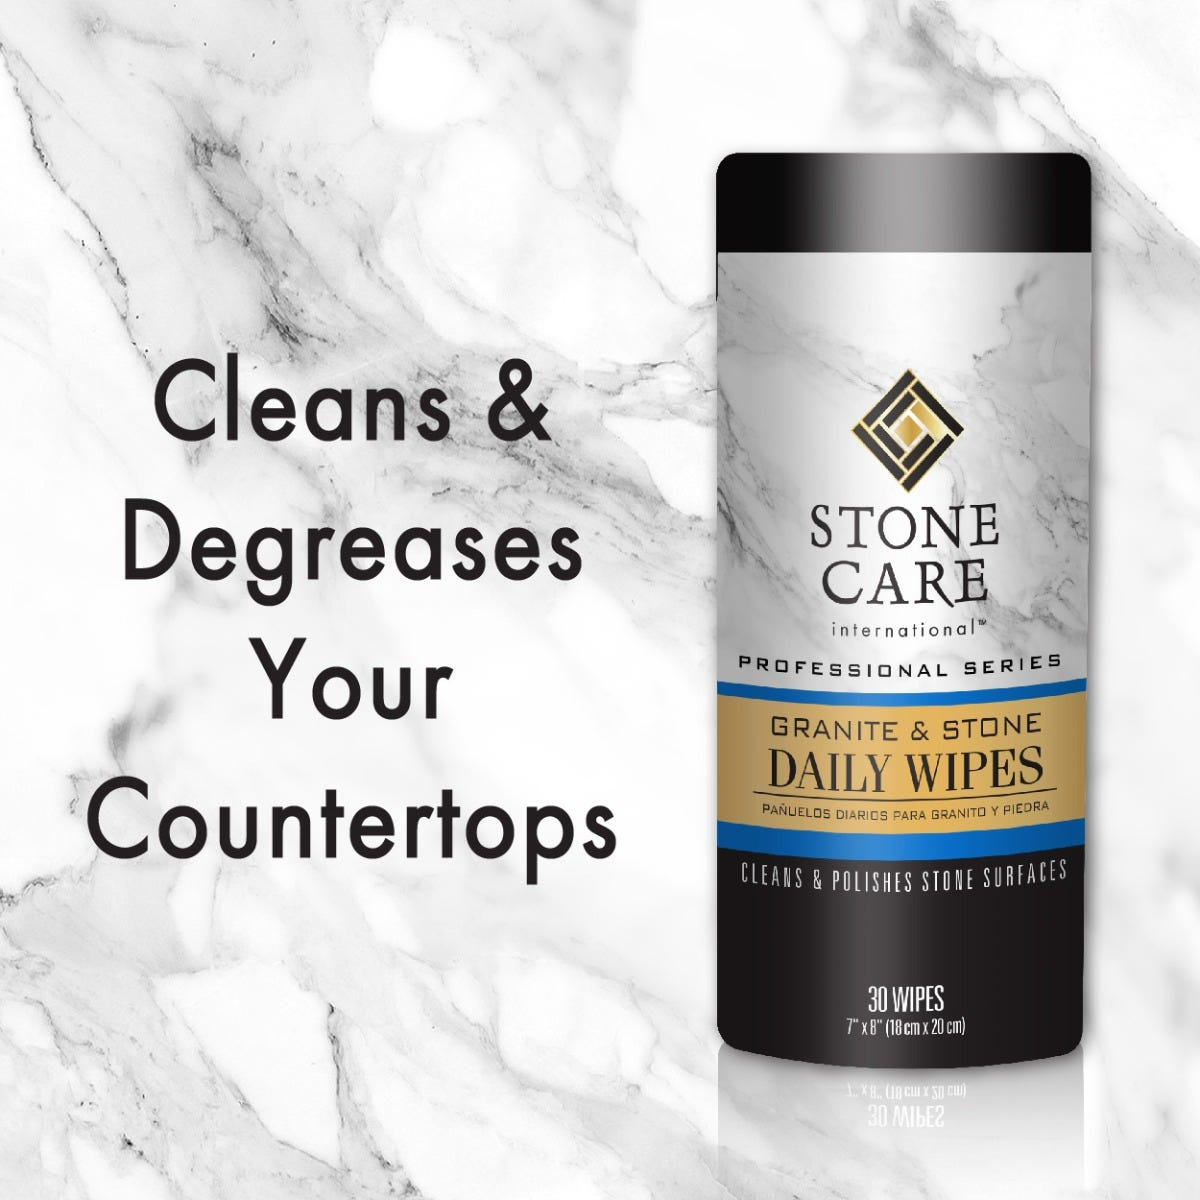 Cleans and degreases countertops